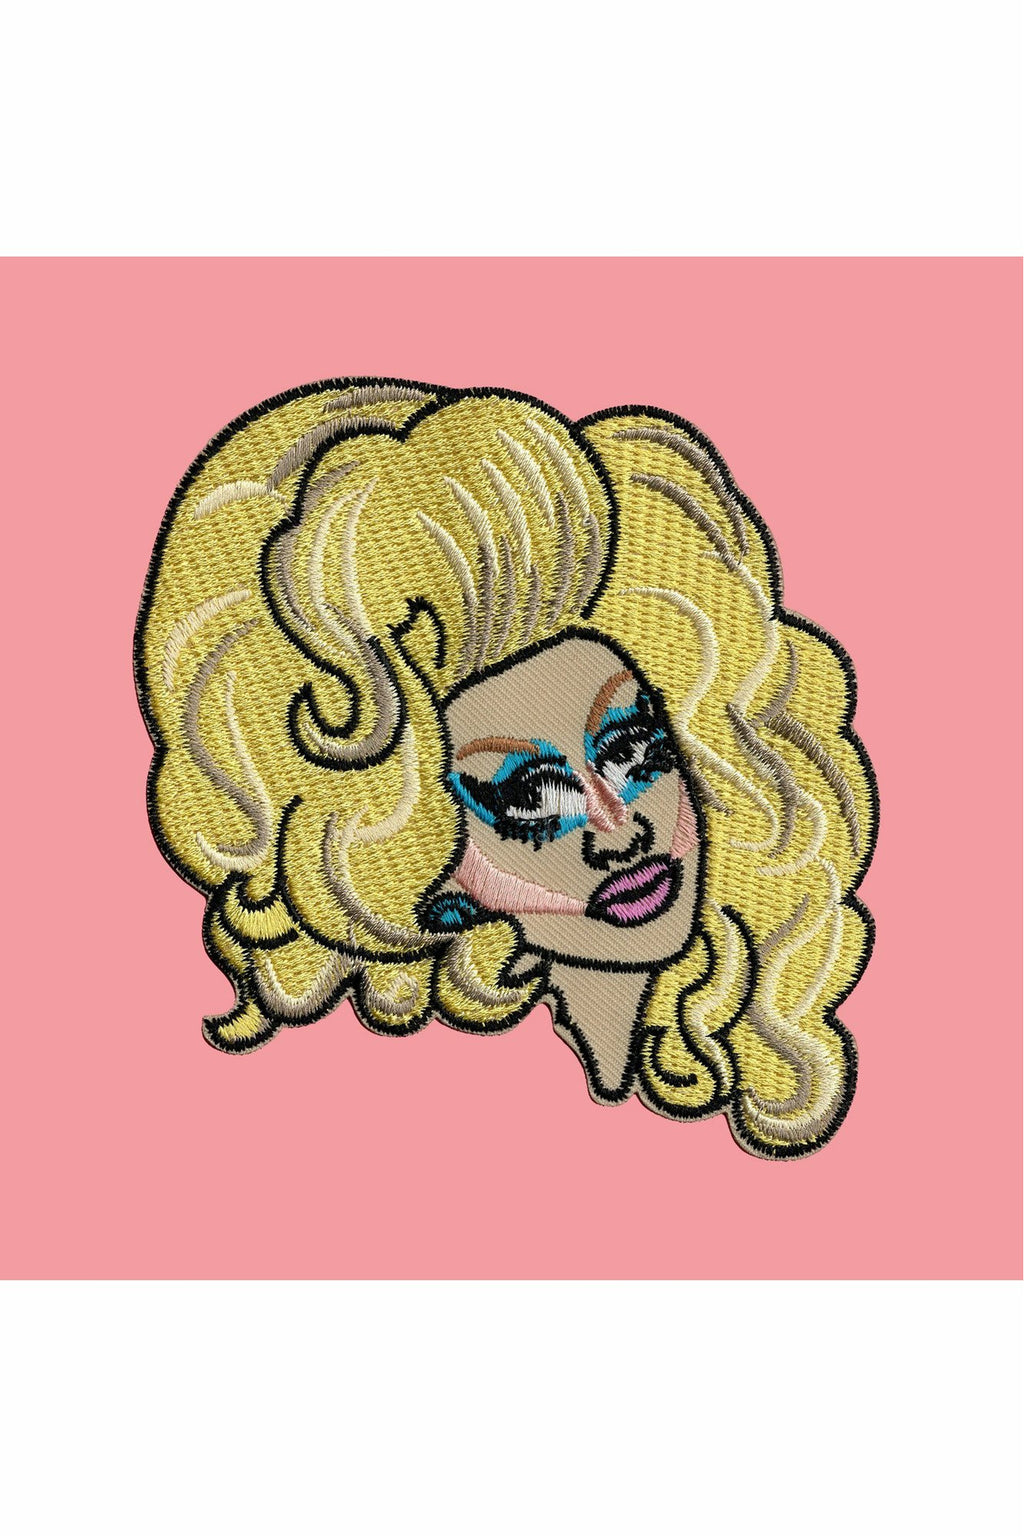 Trixie Mattel Patch